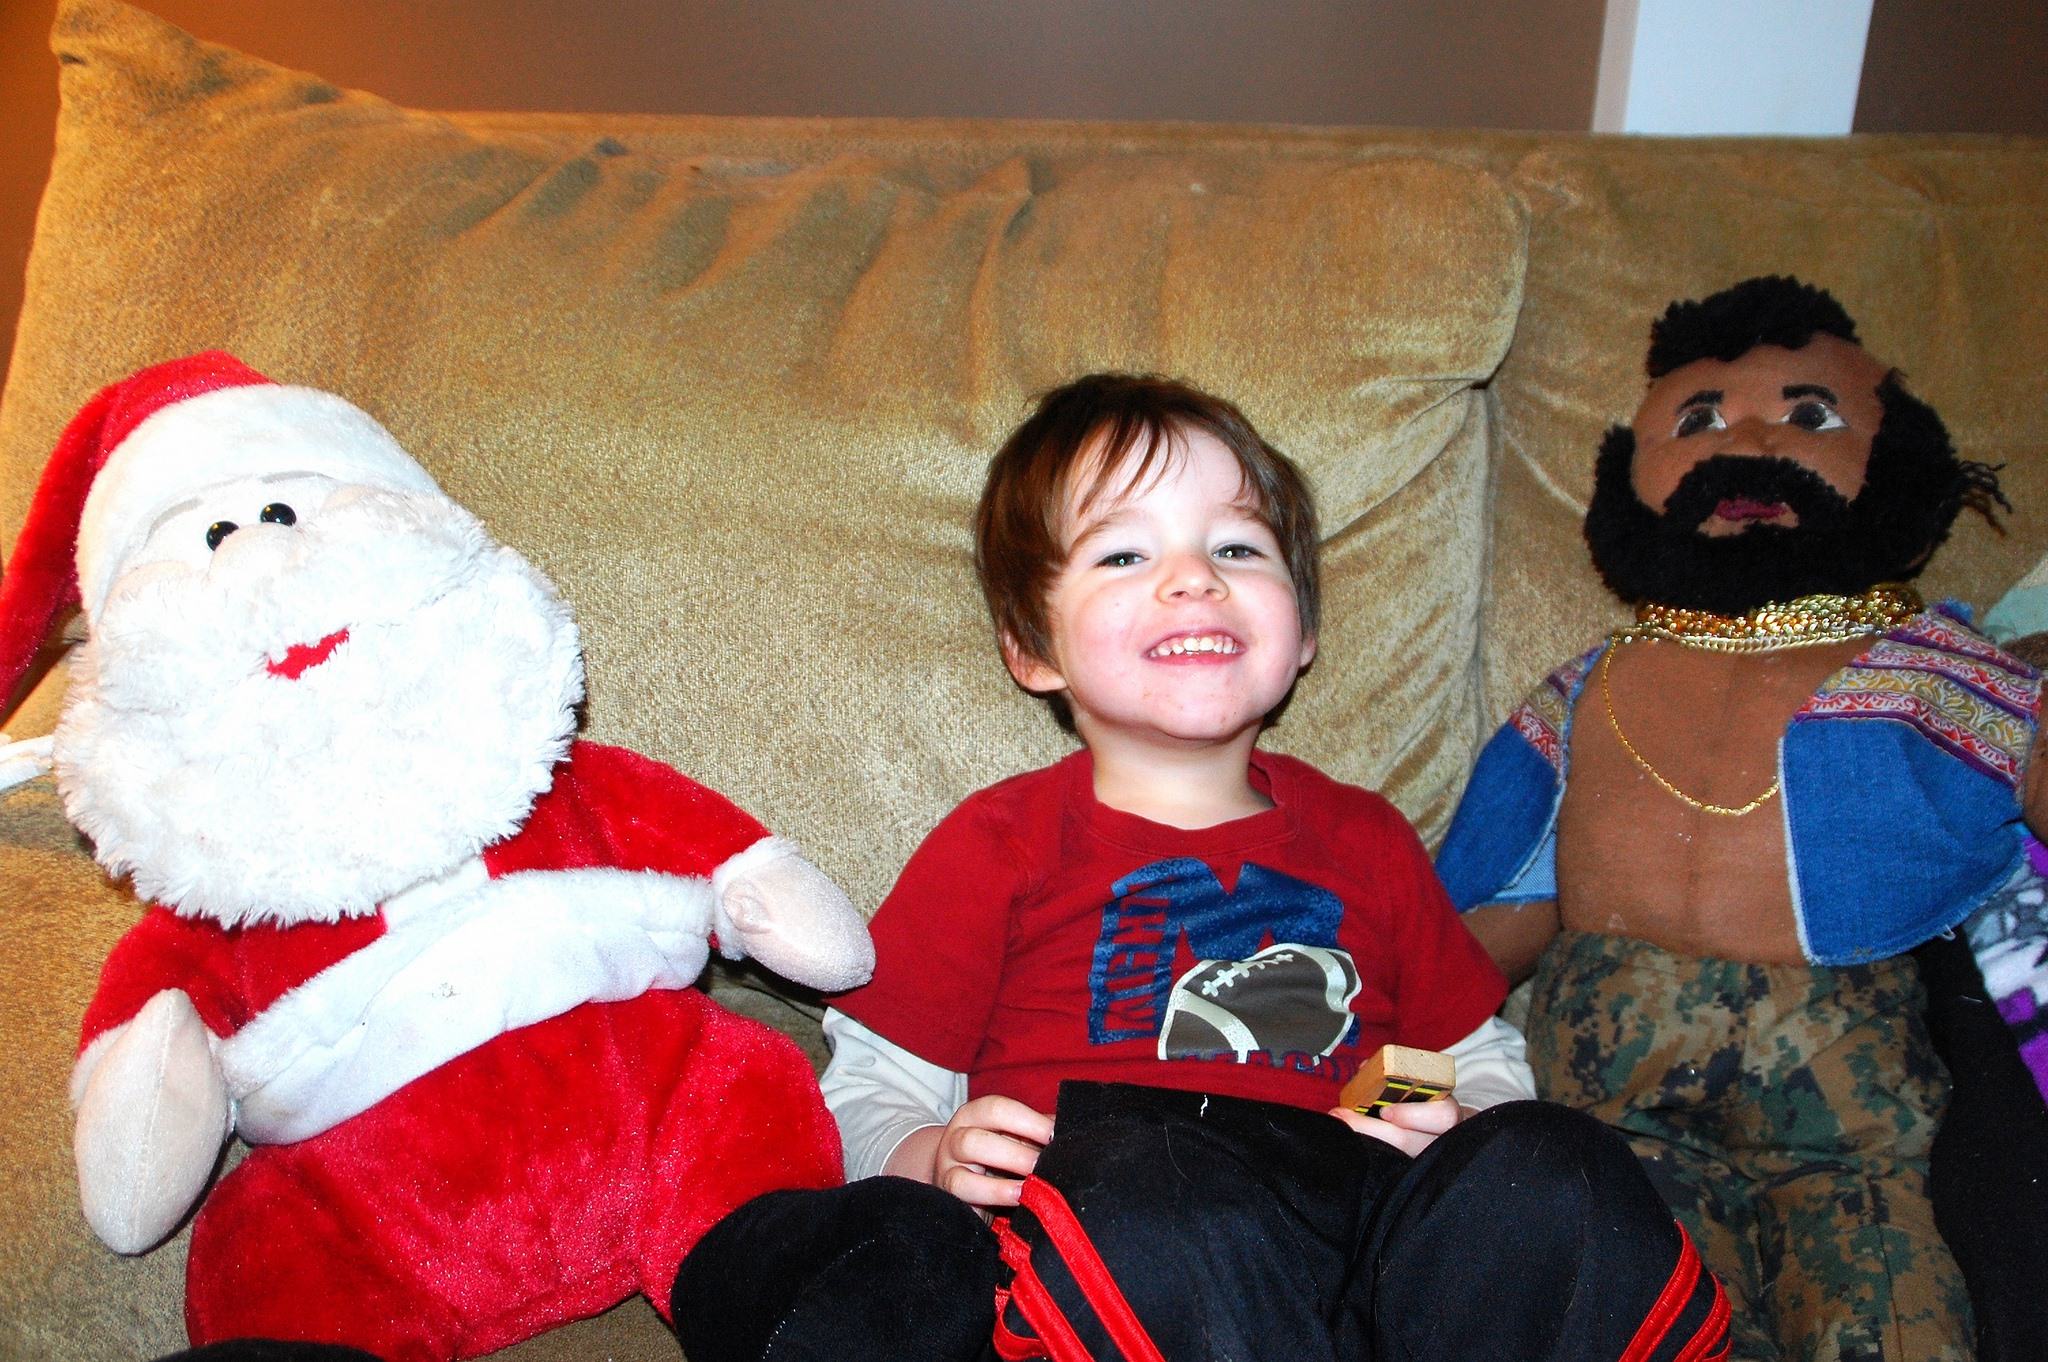 Two year old with Mr. T and Santa